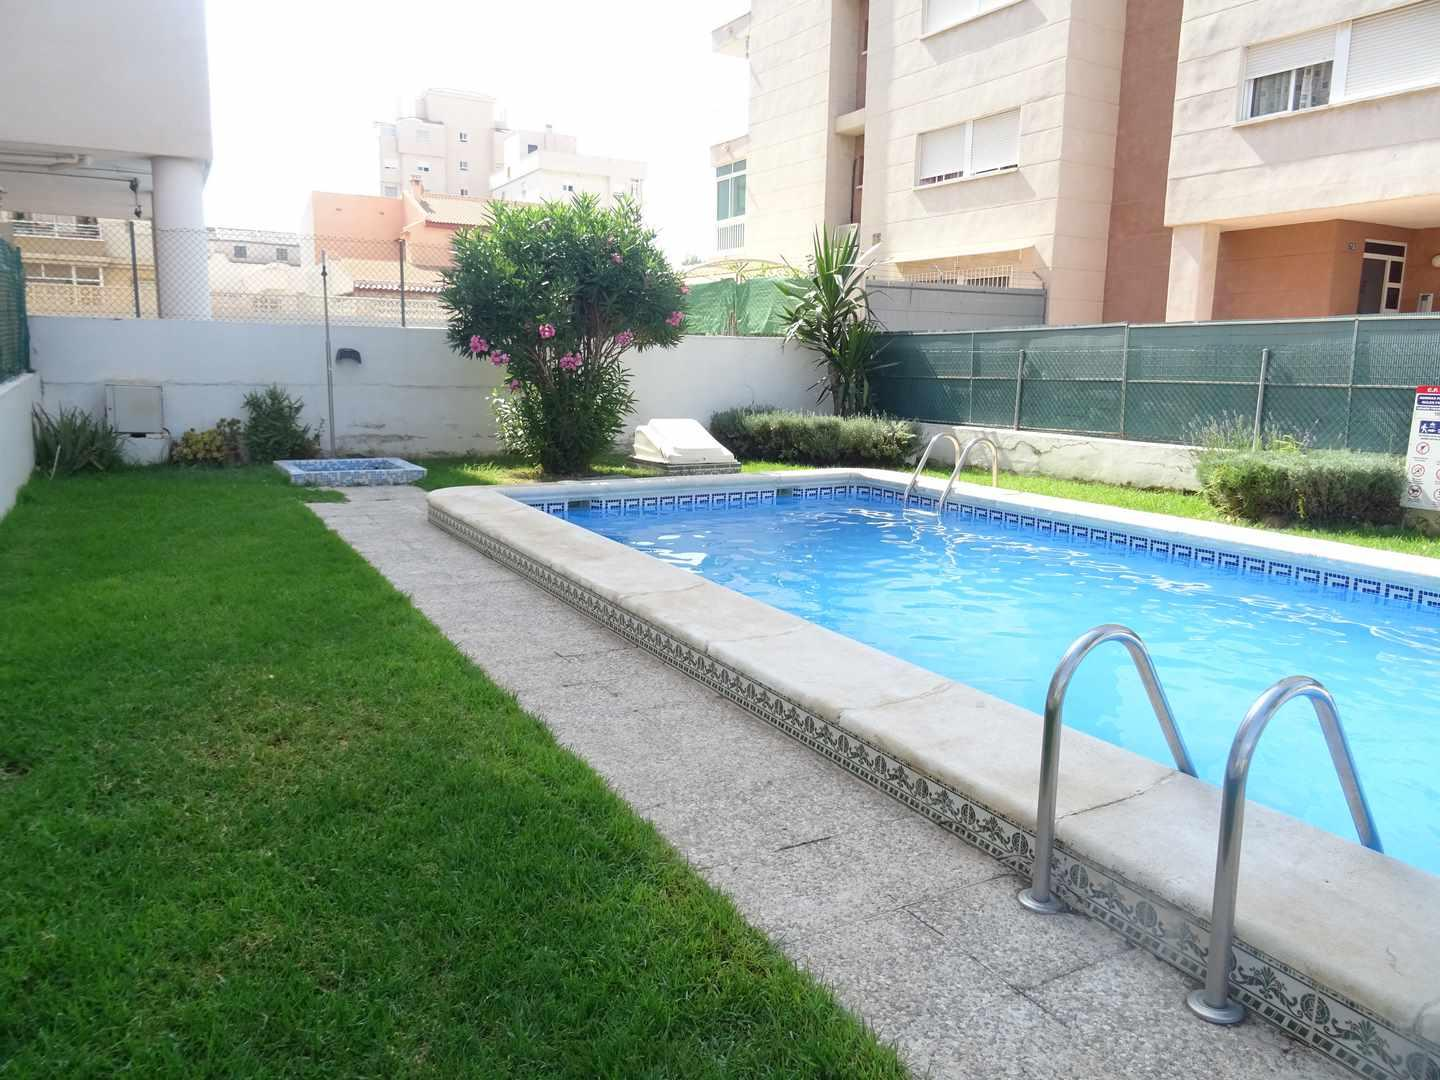 2 Bedrooms Apartment With Swimming Pool For Sale in Nueva Torrevieja